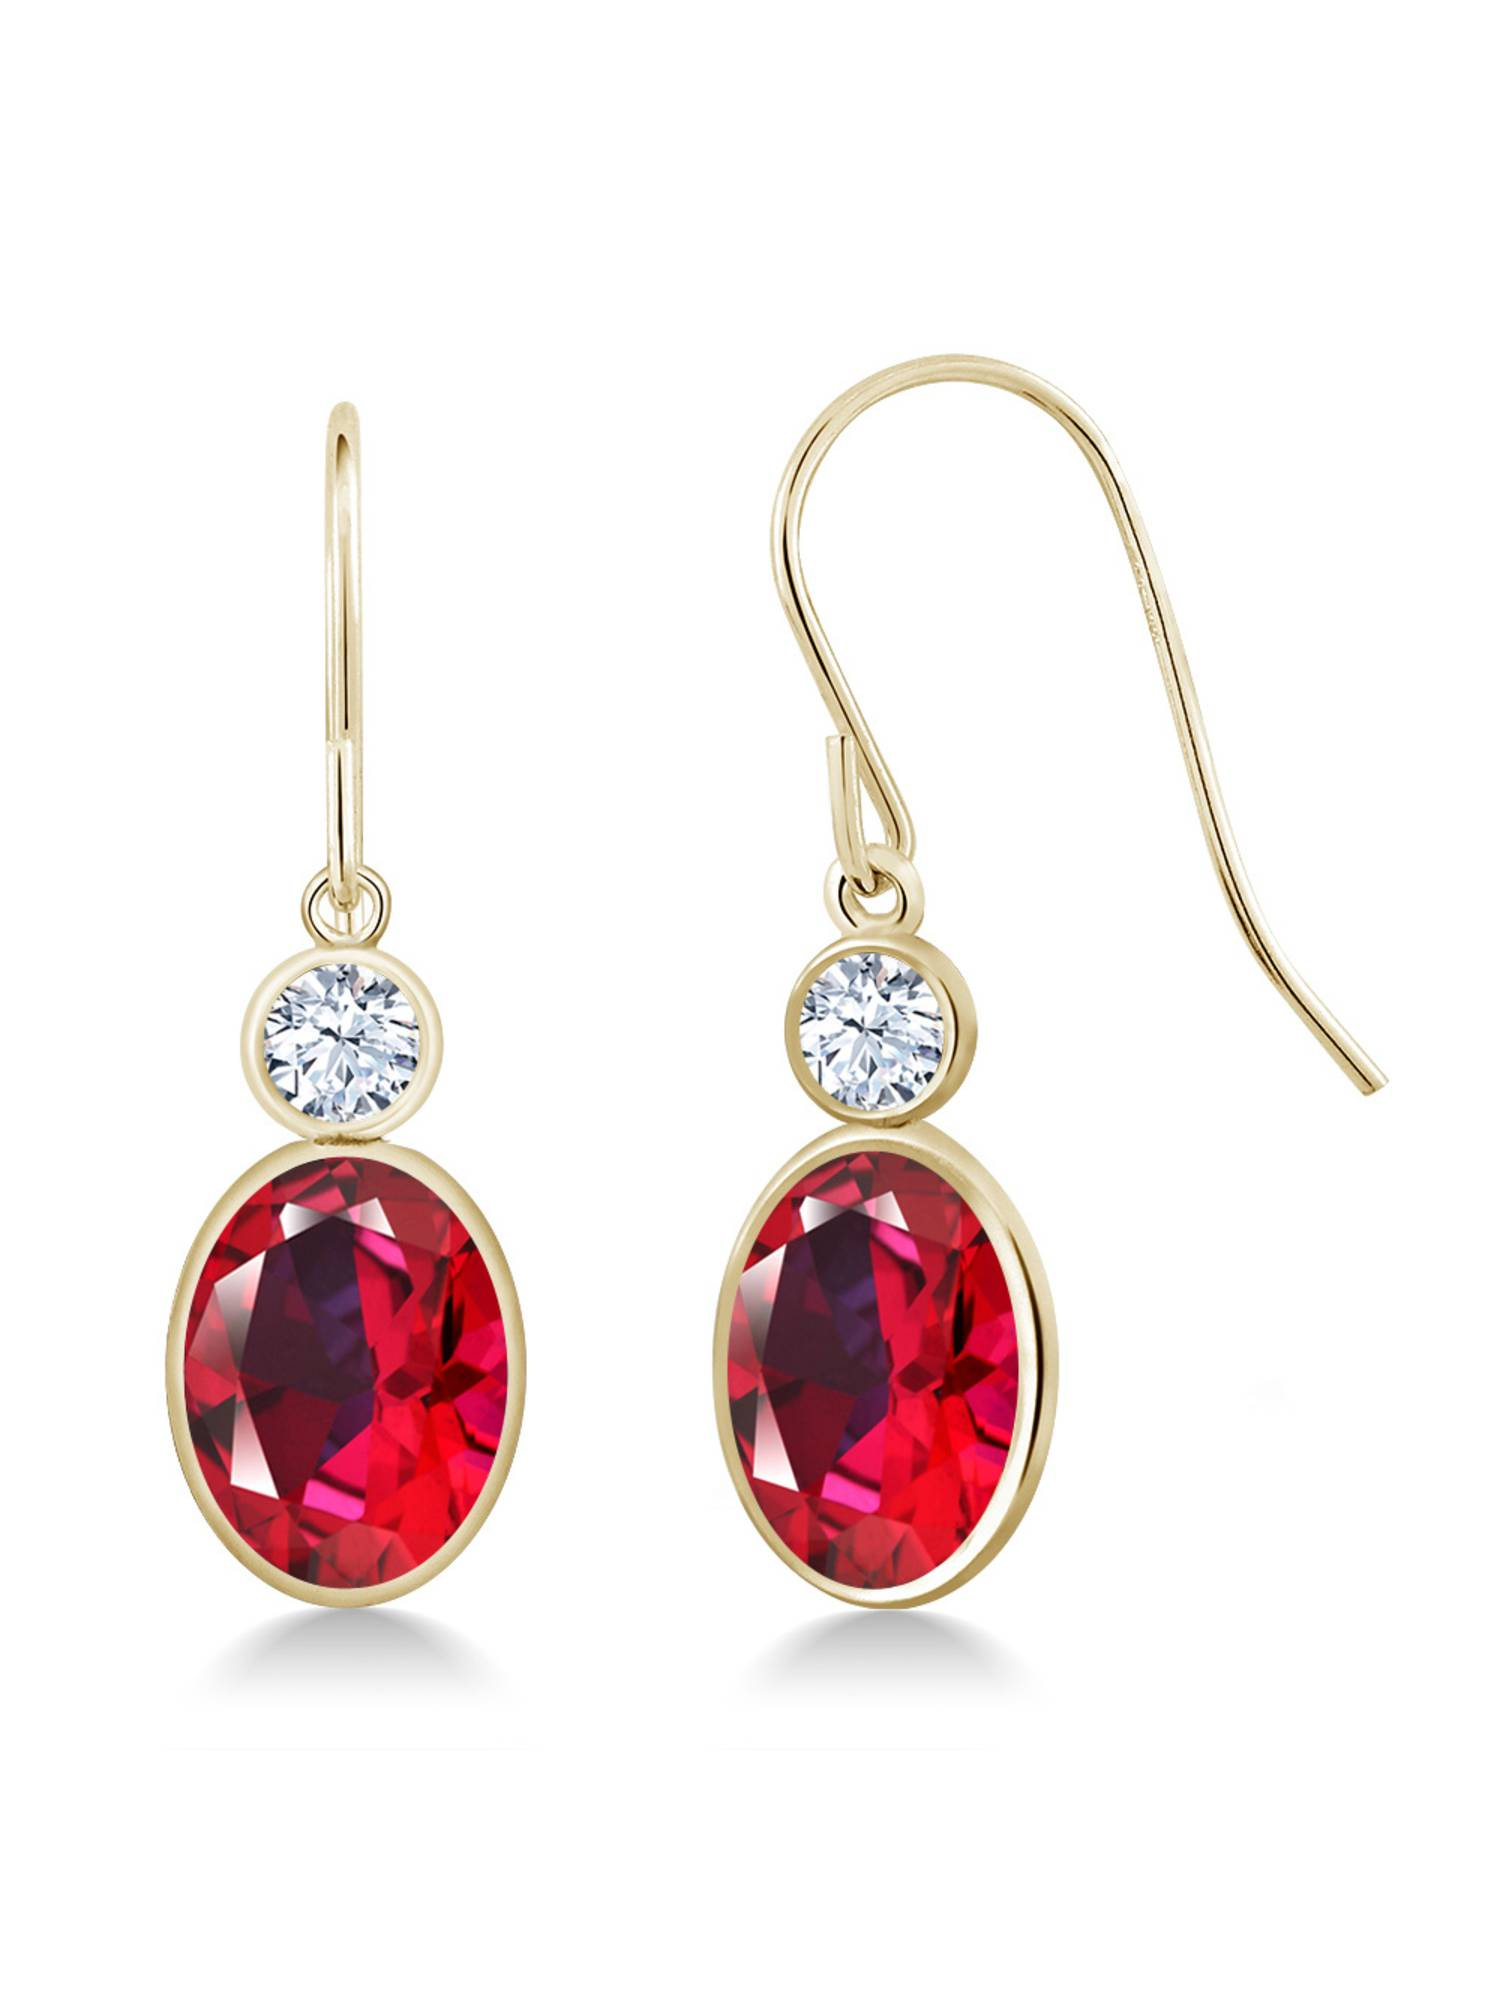 14K Yellow Gold Earrings Set with Oval Blazing Red Topaz from Swarovski by